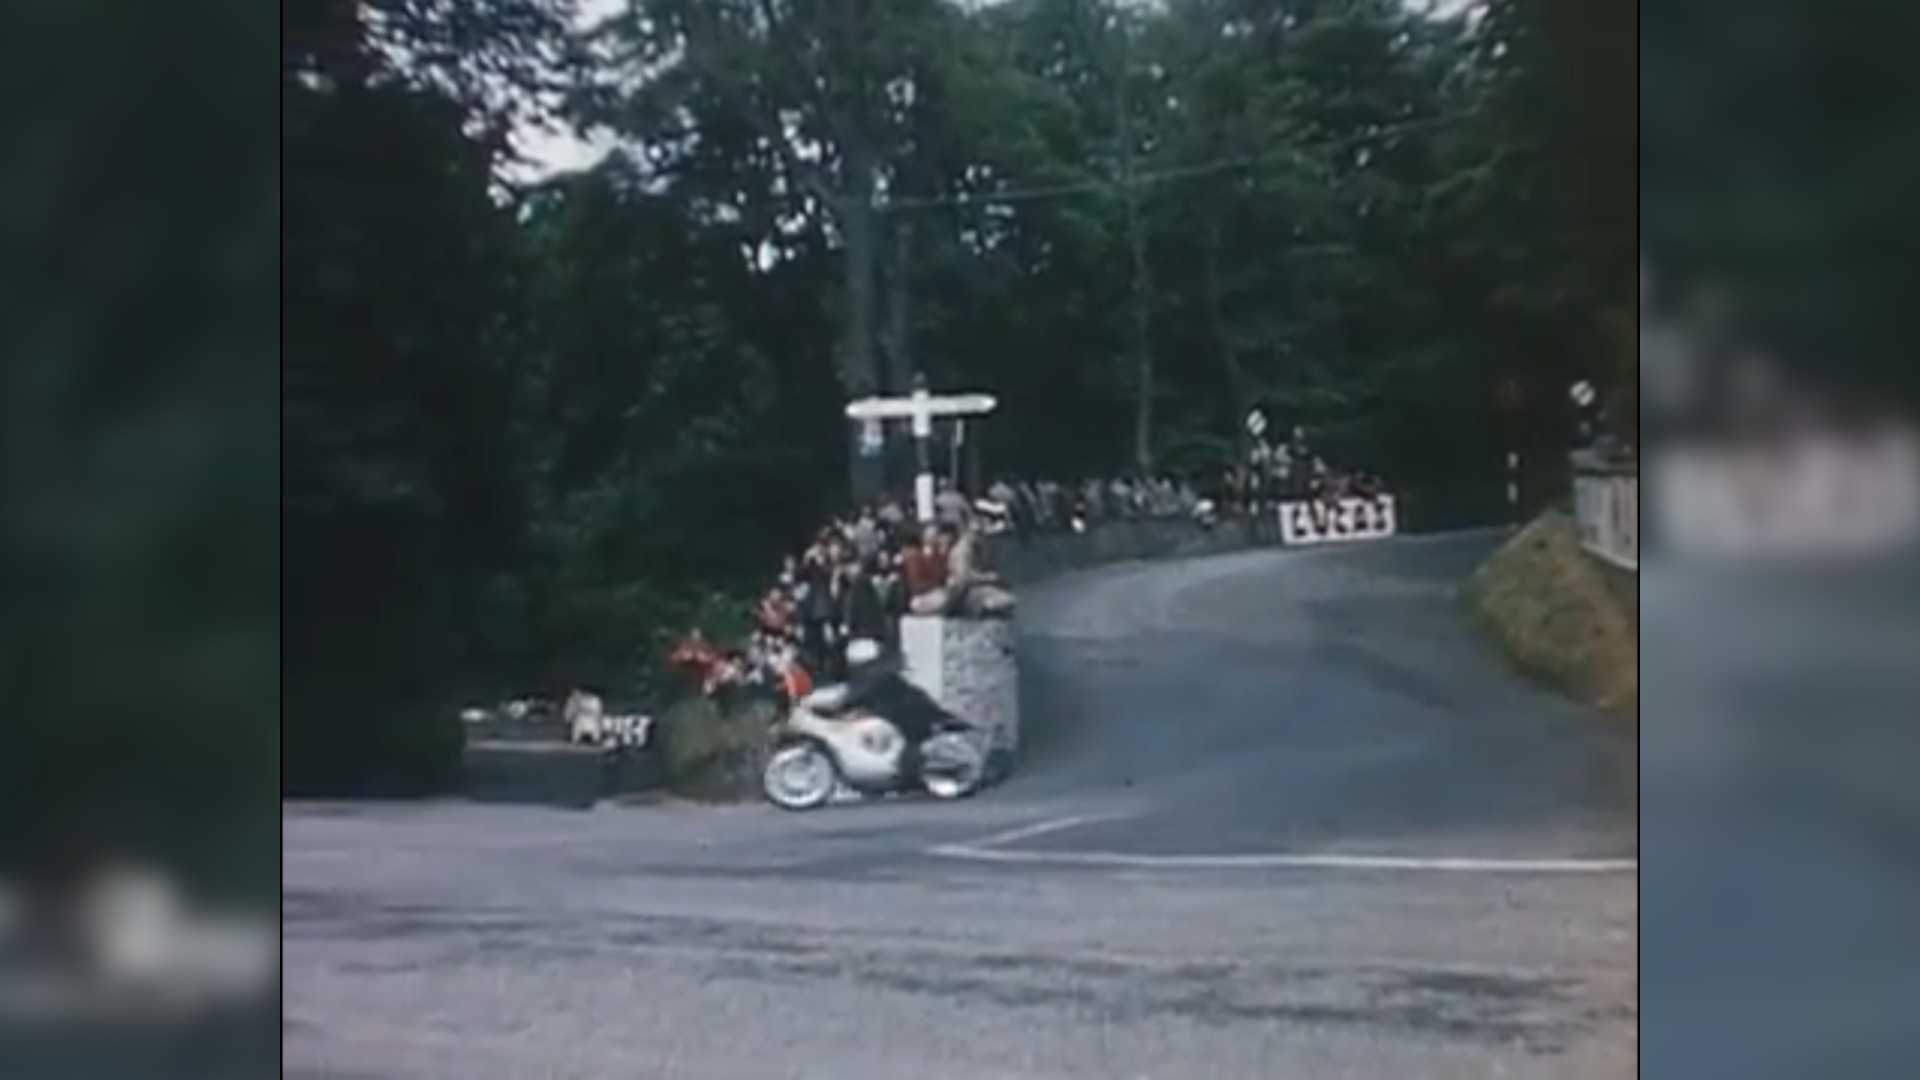 Watch Honda Take Its First-Ever IOMTT Win In 1961